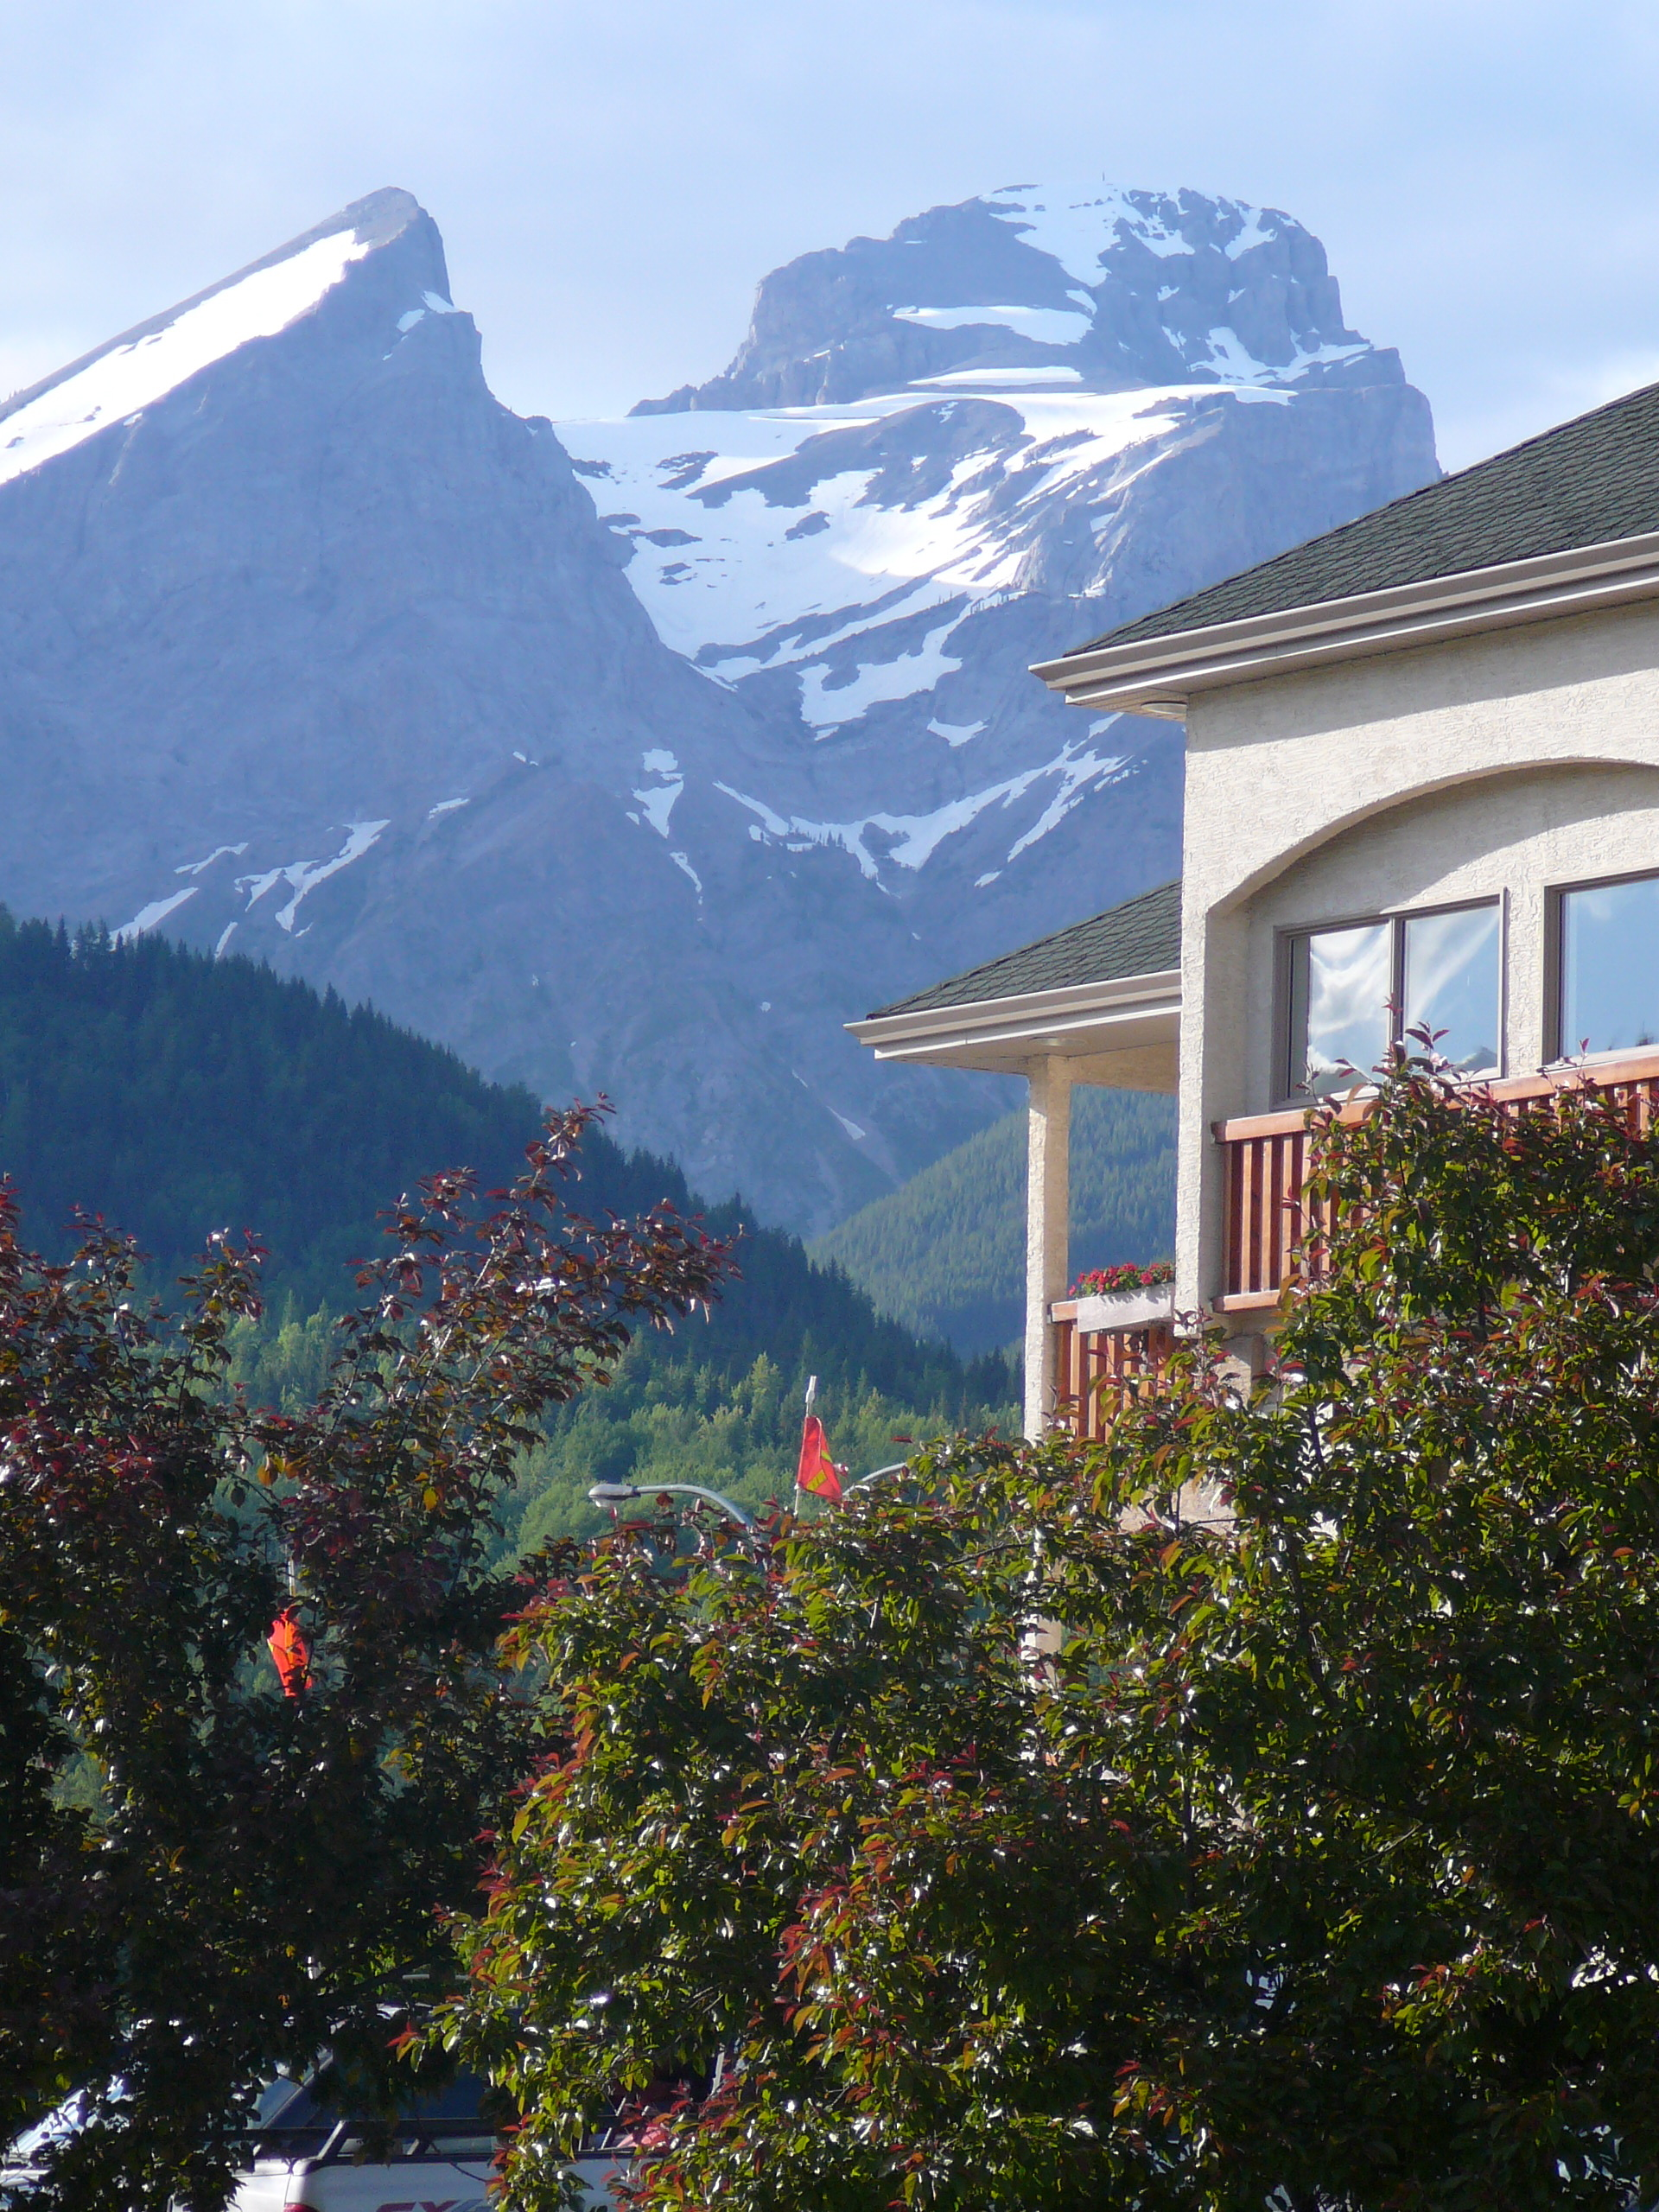 My hotel (Park Place Lodge) in Fernie